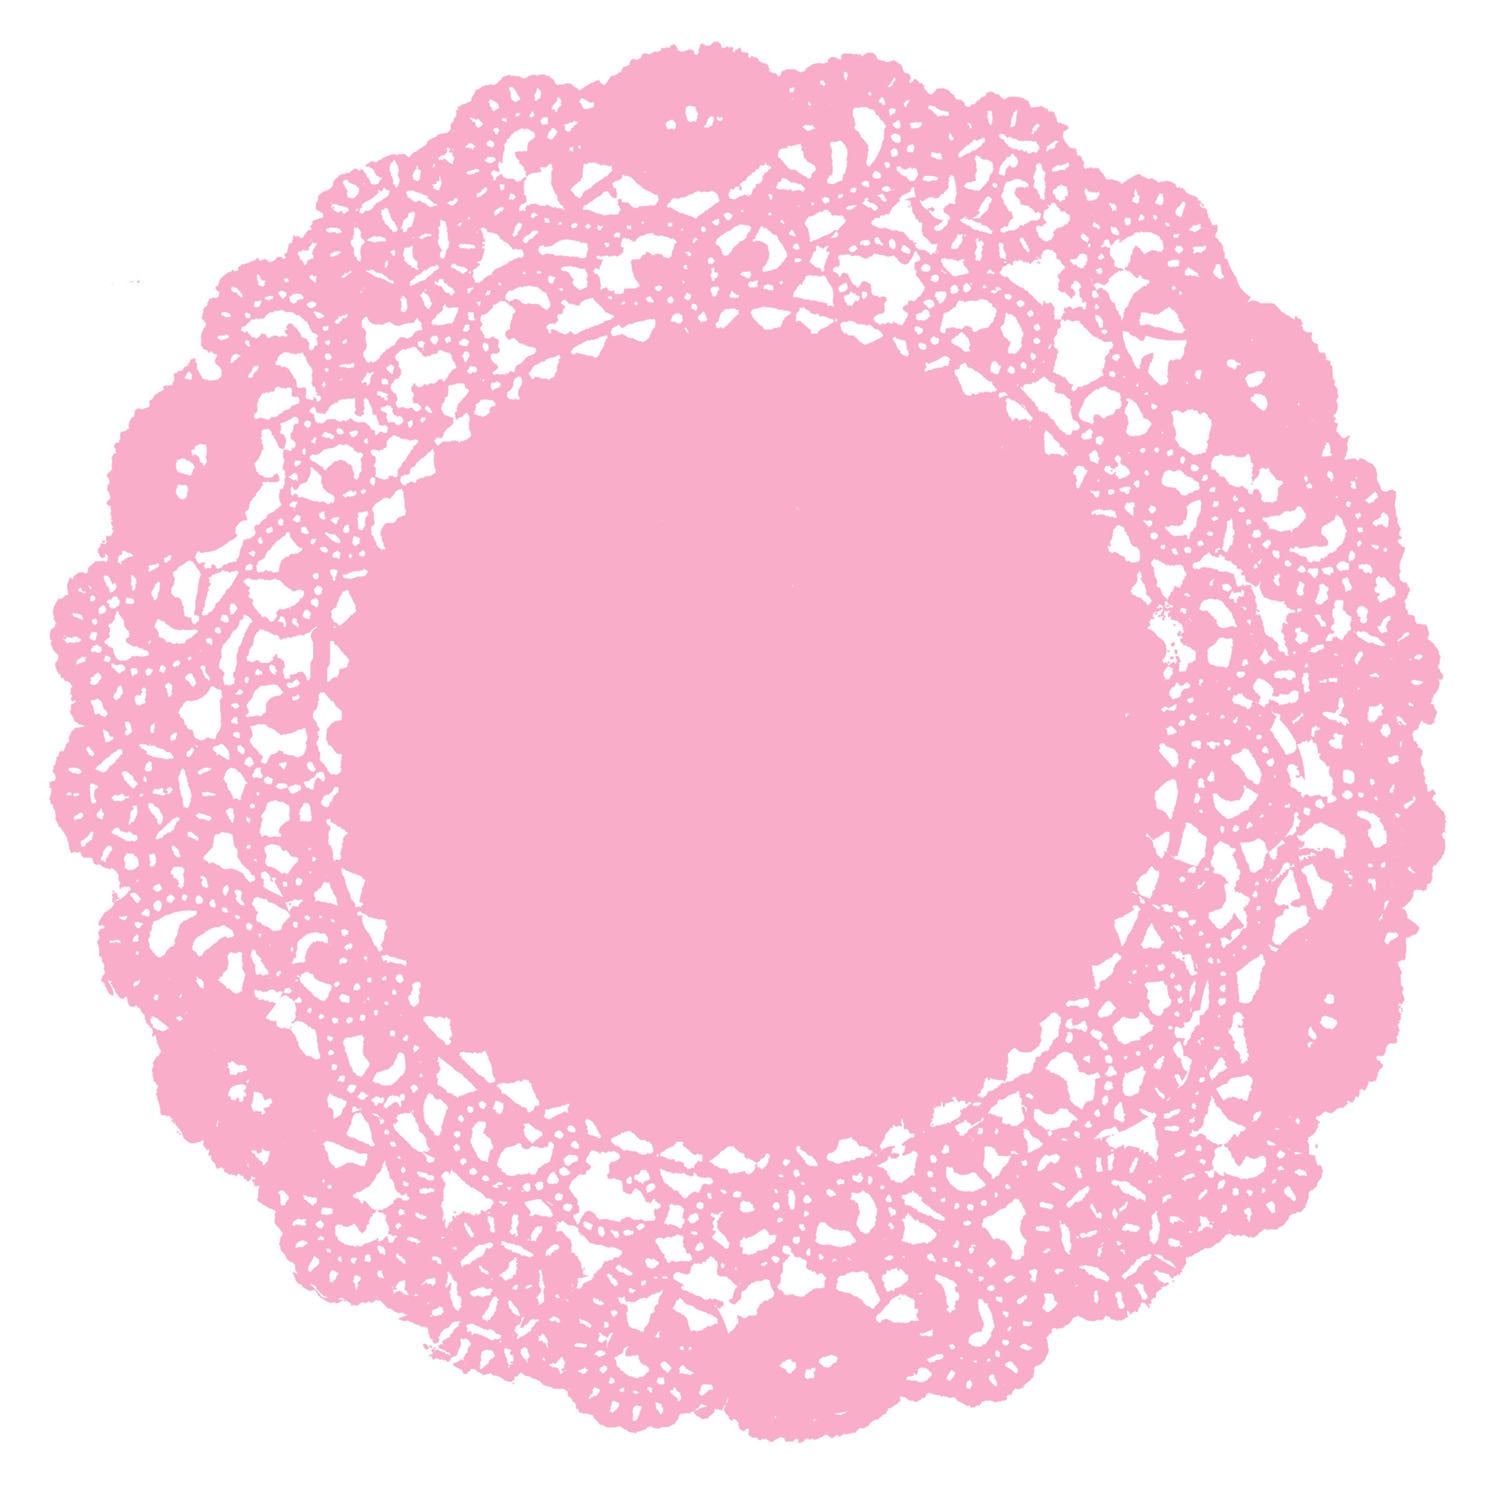 Cotton Candy Doily